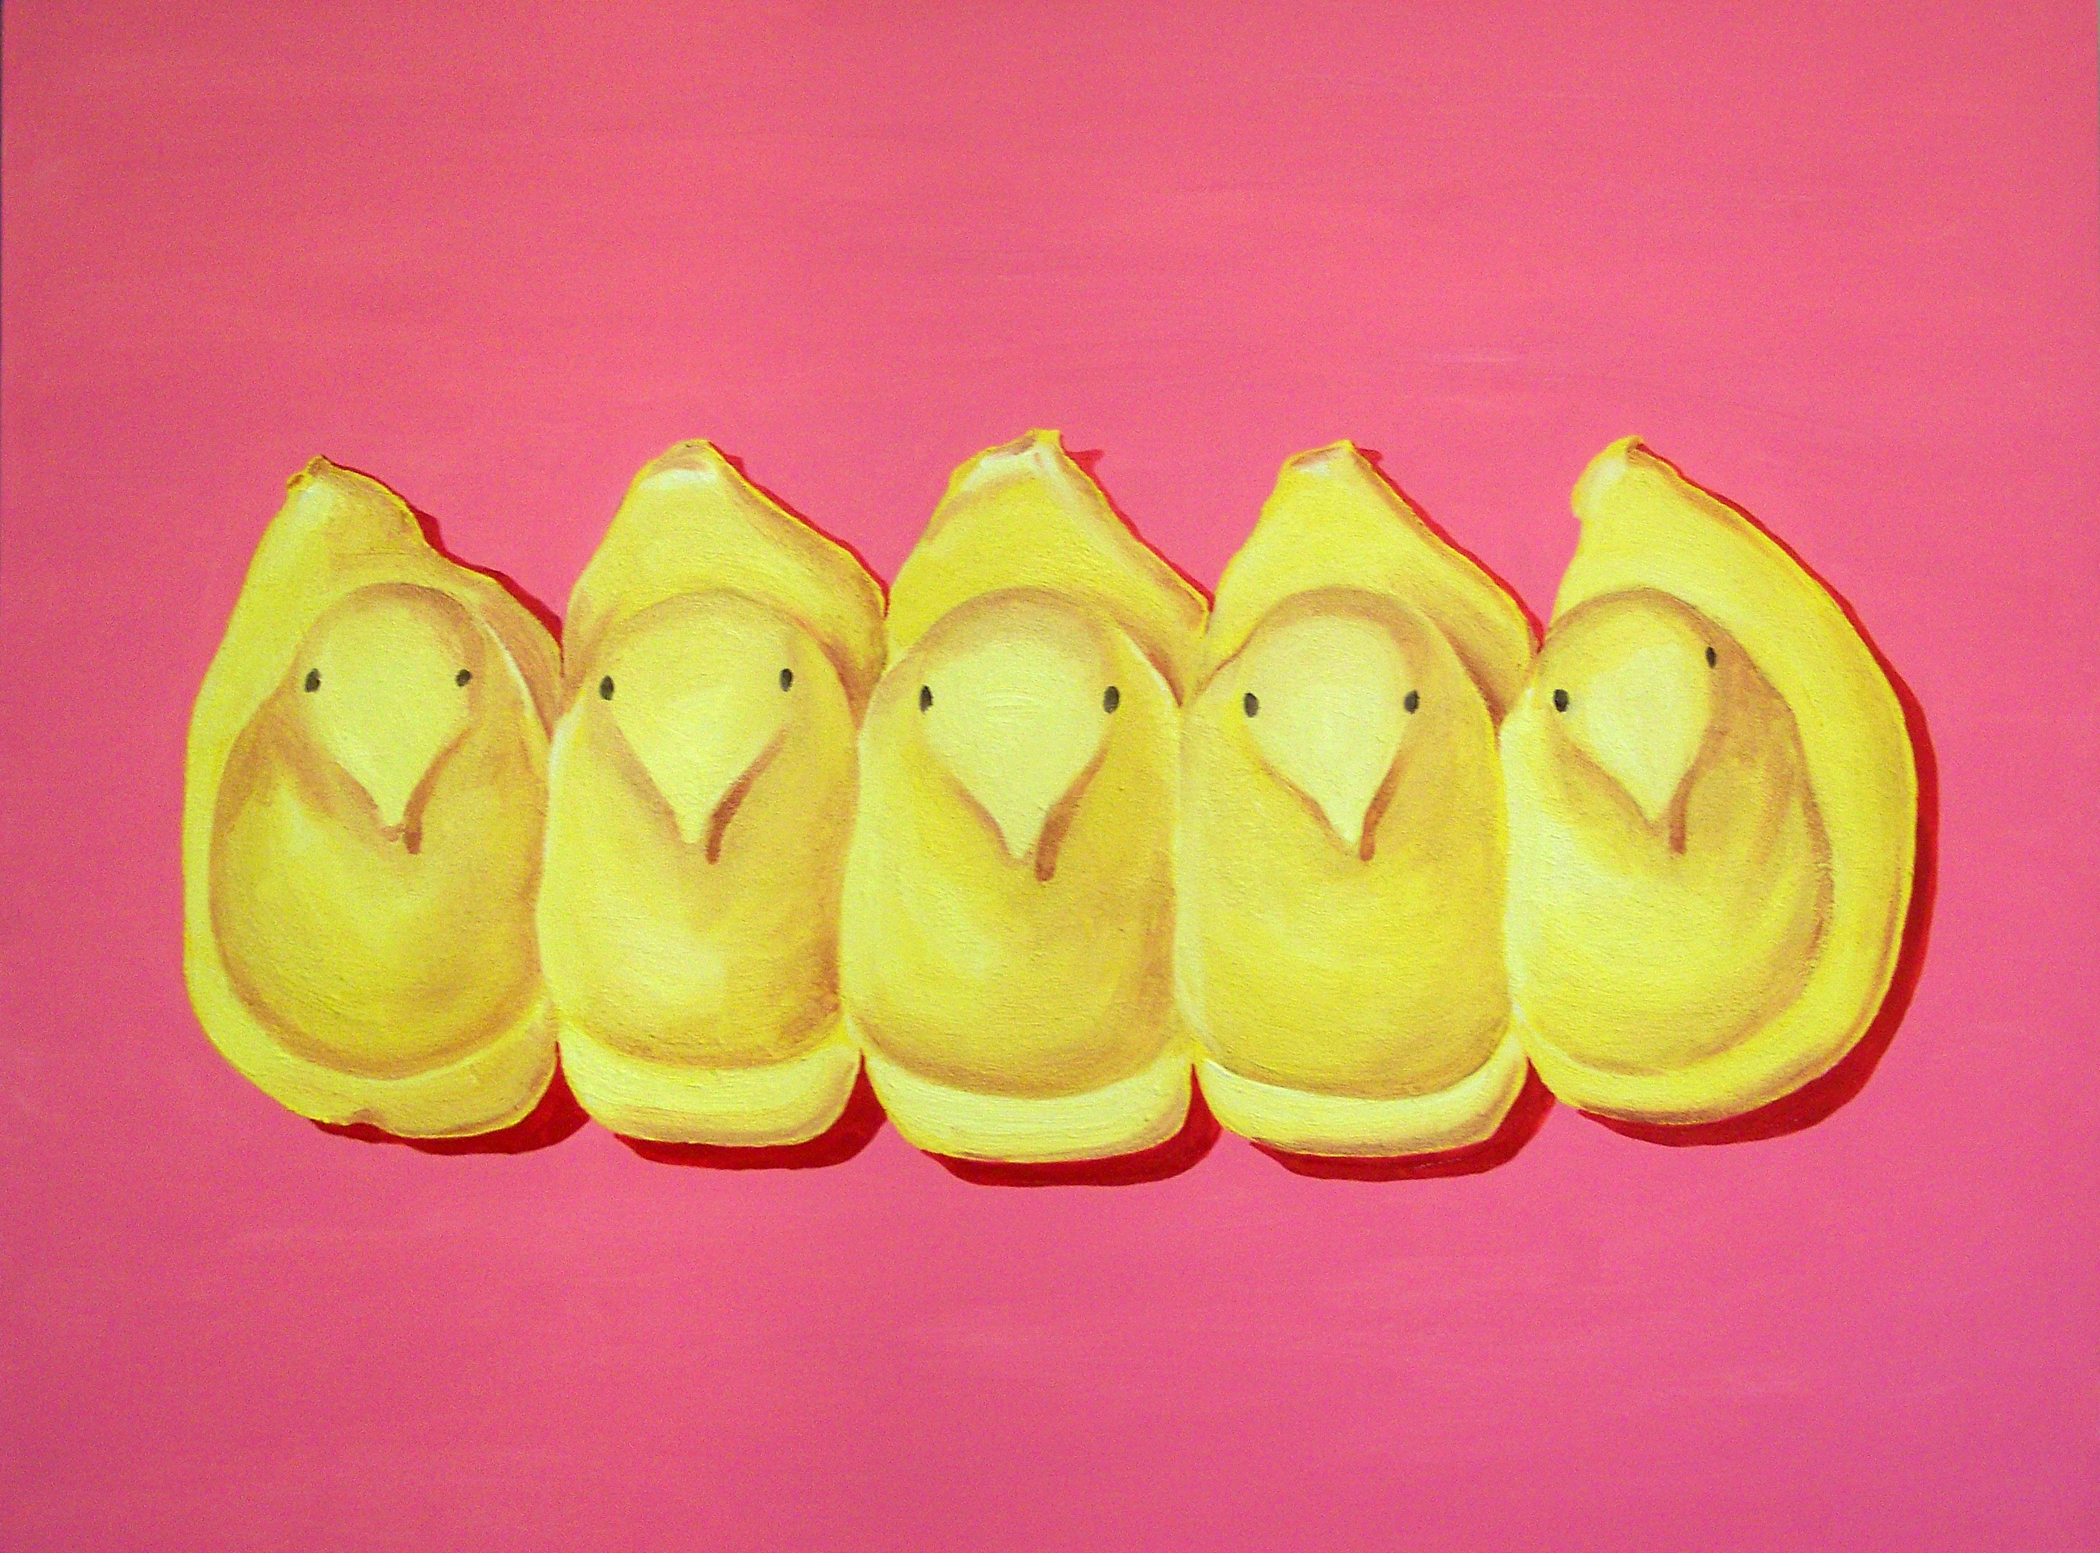 SOLD-40x30-All My Chicks in a Row